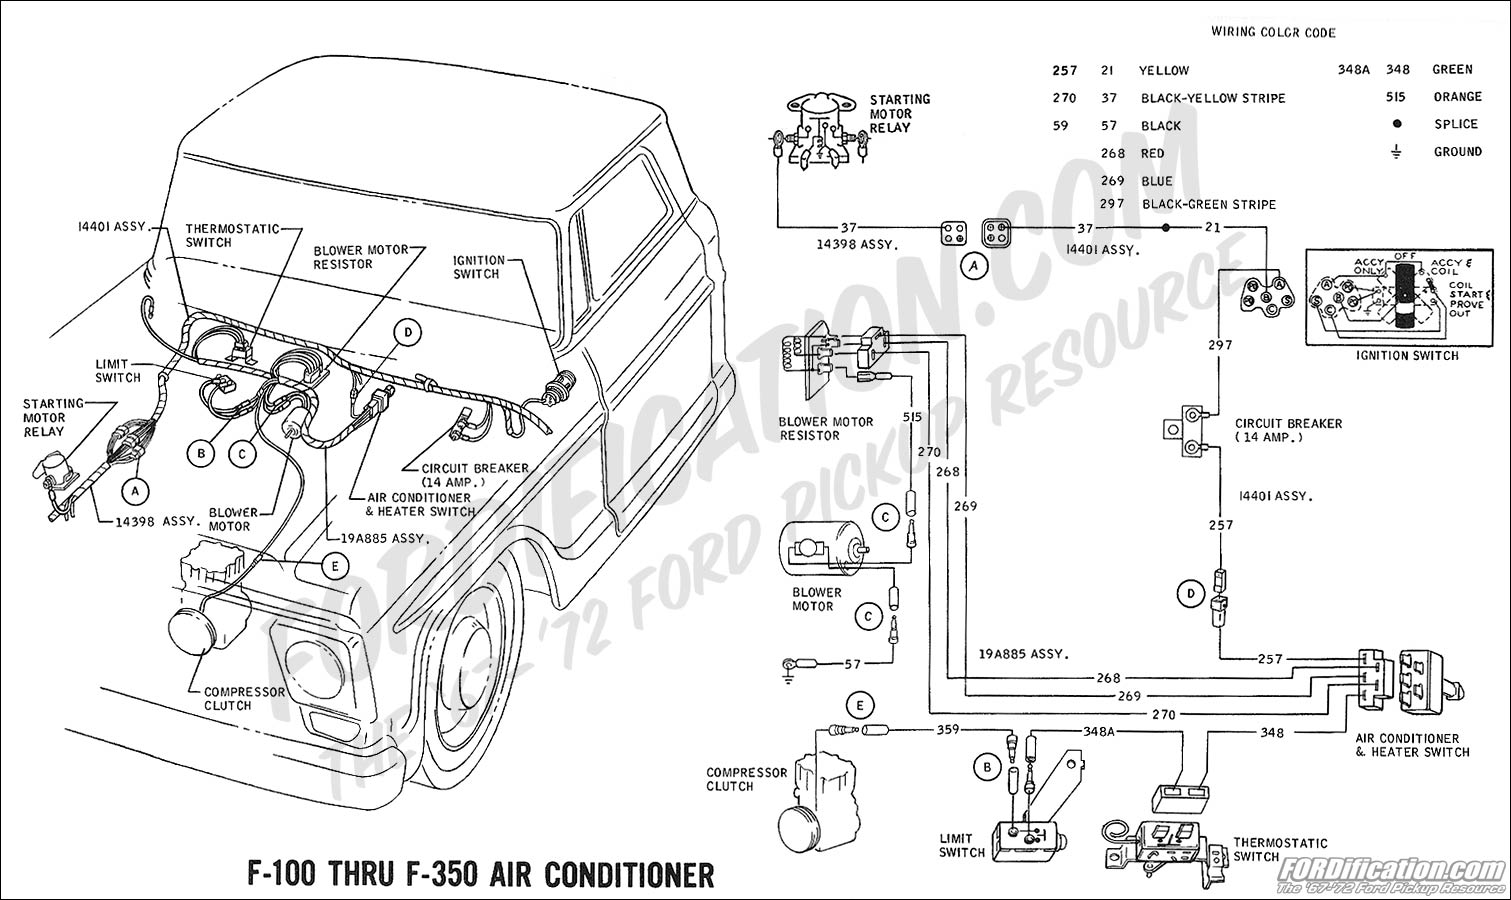 wiring_69ac ford truck technical drawings and schematics section h wiring wiring diagrams for ford trucks at crackthecode.co